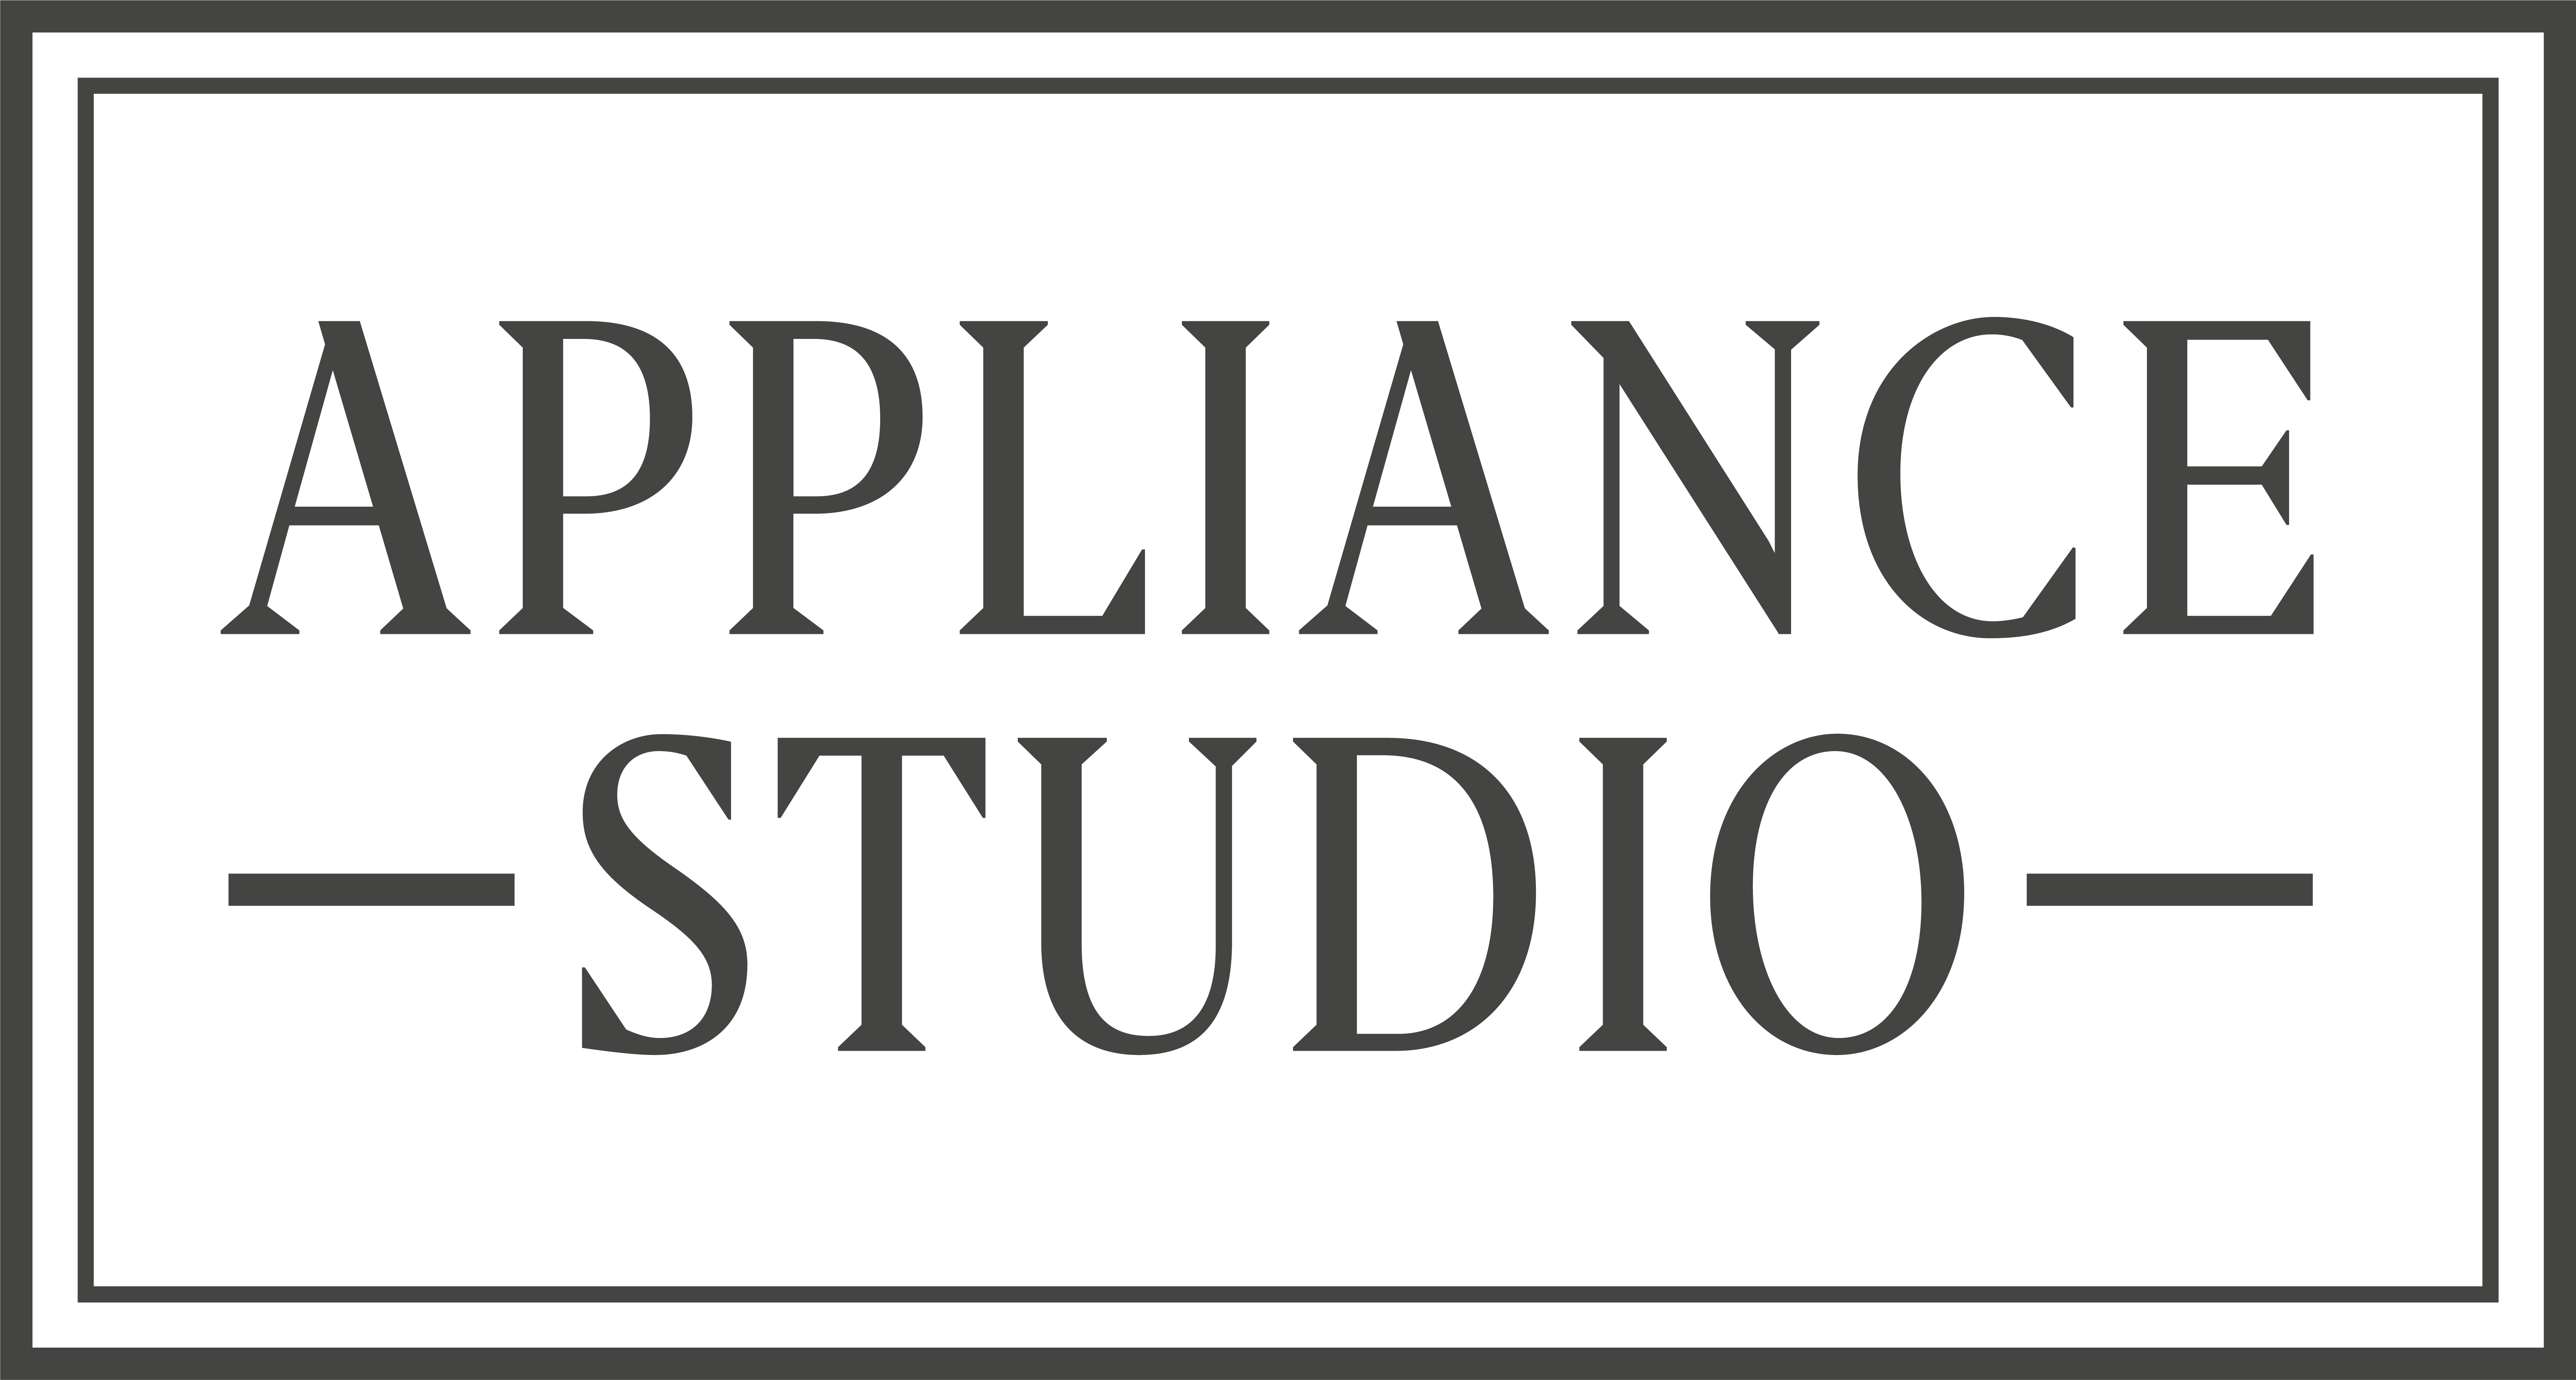 APPLIANCE STUDIO